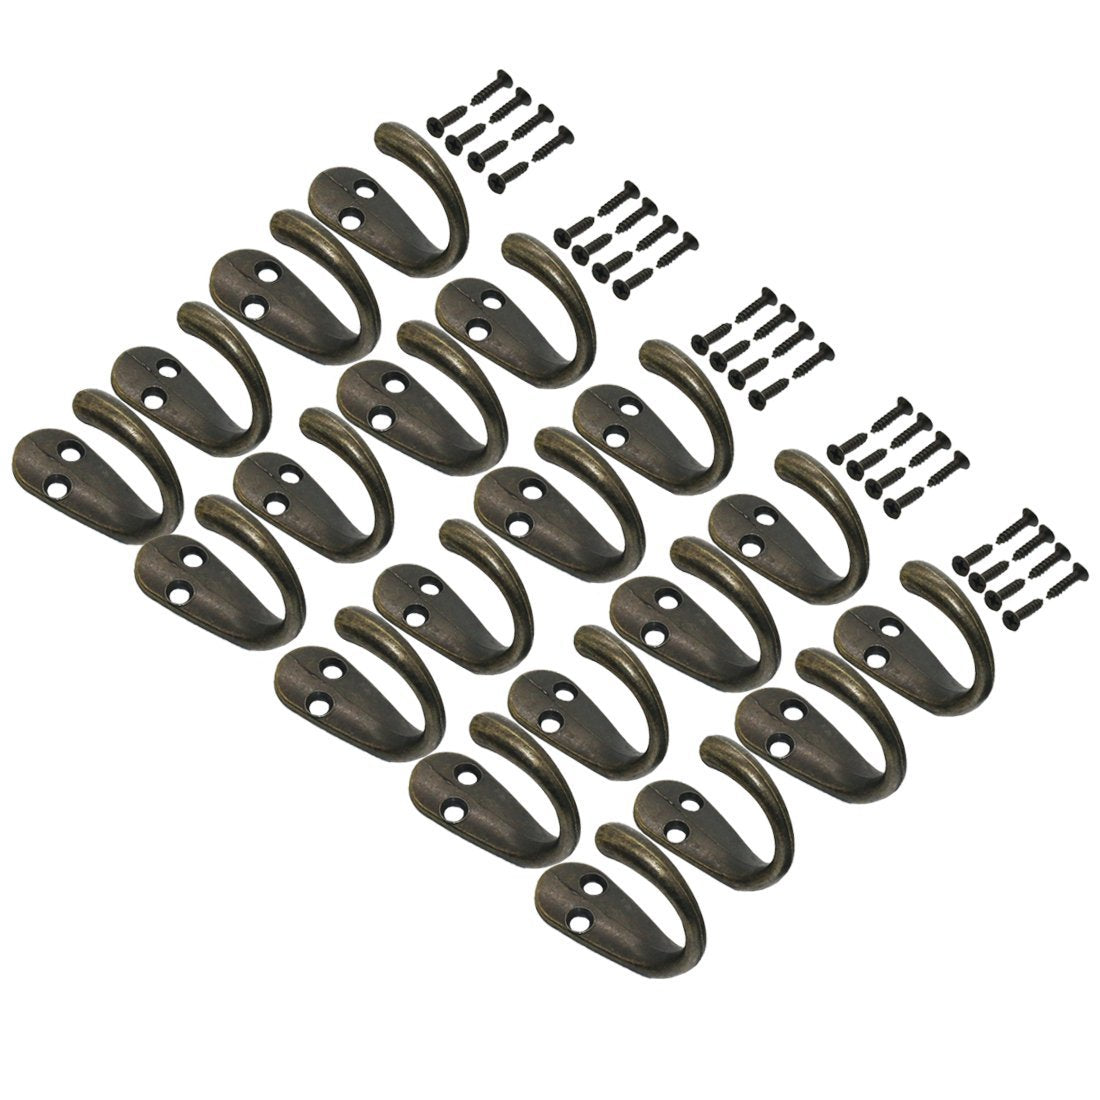 22pcs Vintage Retro Black Robe Hooks Wall Mounted Single Key Hook Hangers with 48pcs Screws